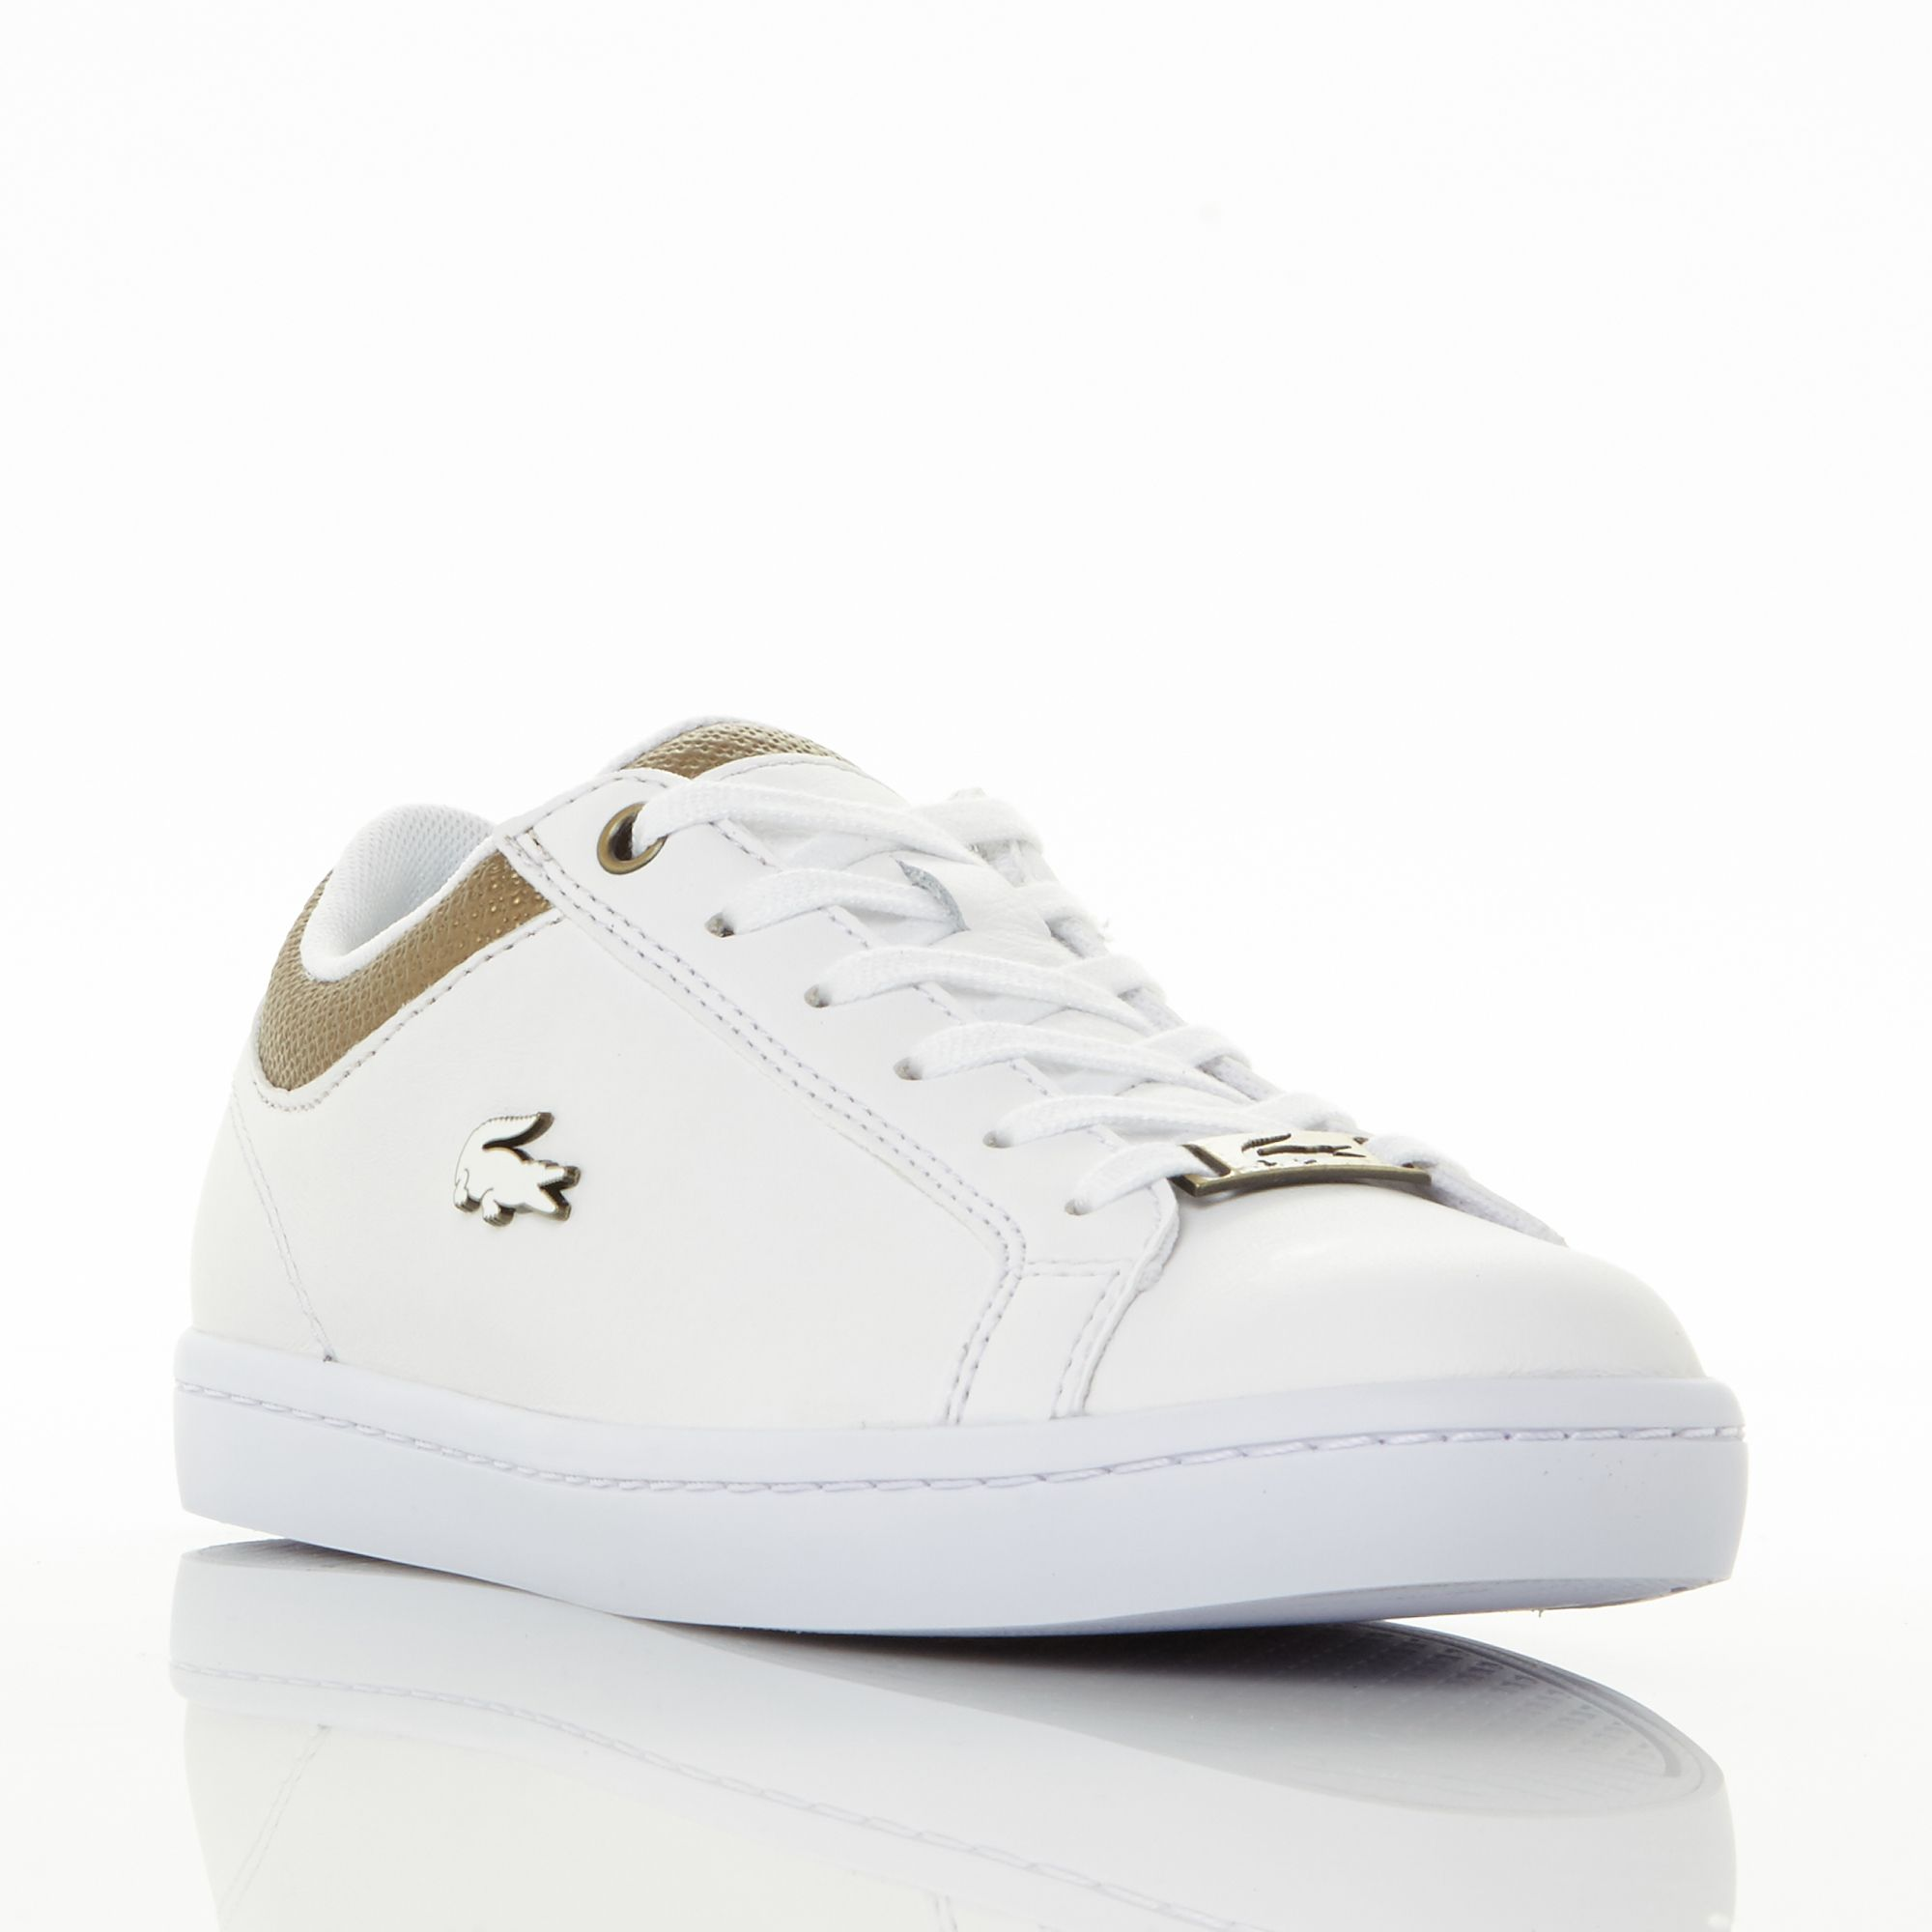 Lacoste Straightset Lace Up Trainers, White